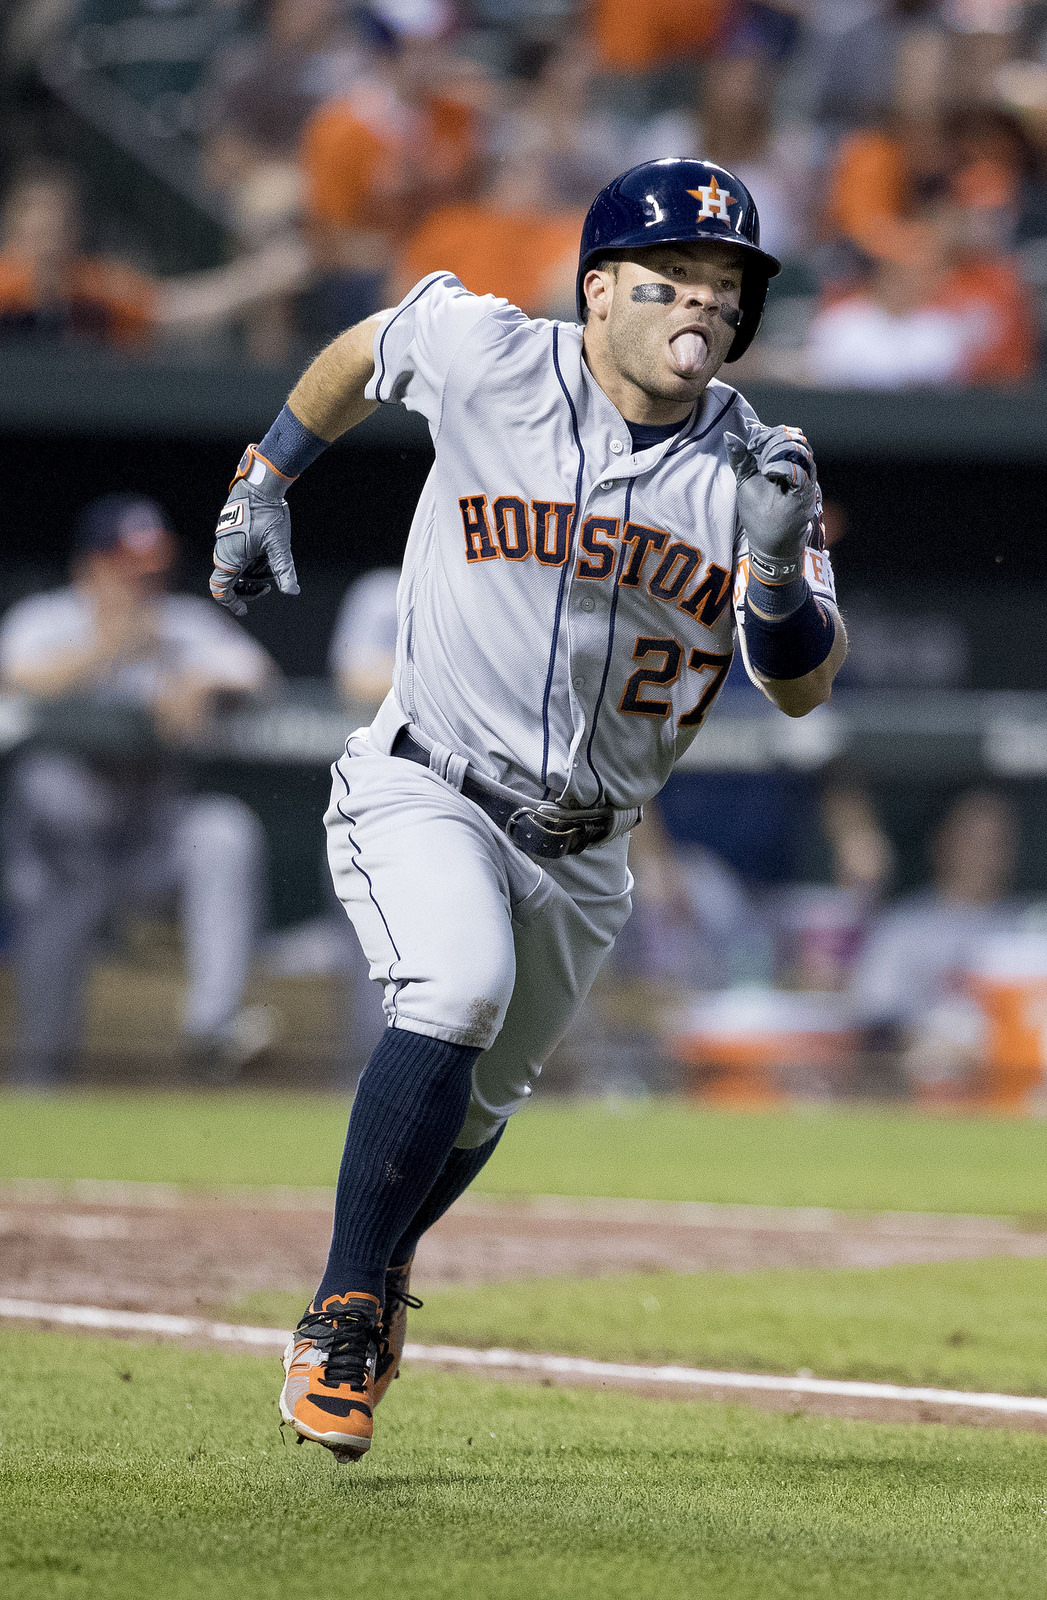 #1 ranked fantasy second baseman, Jose Altuve